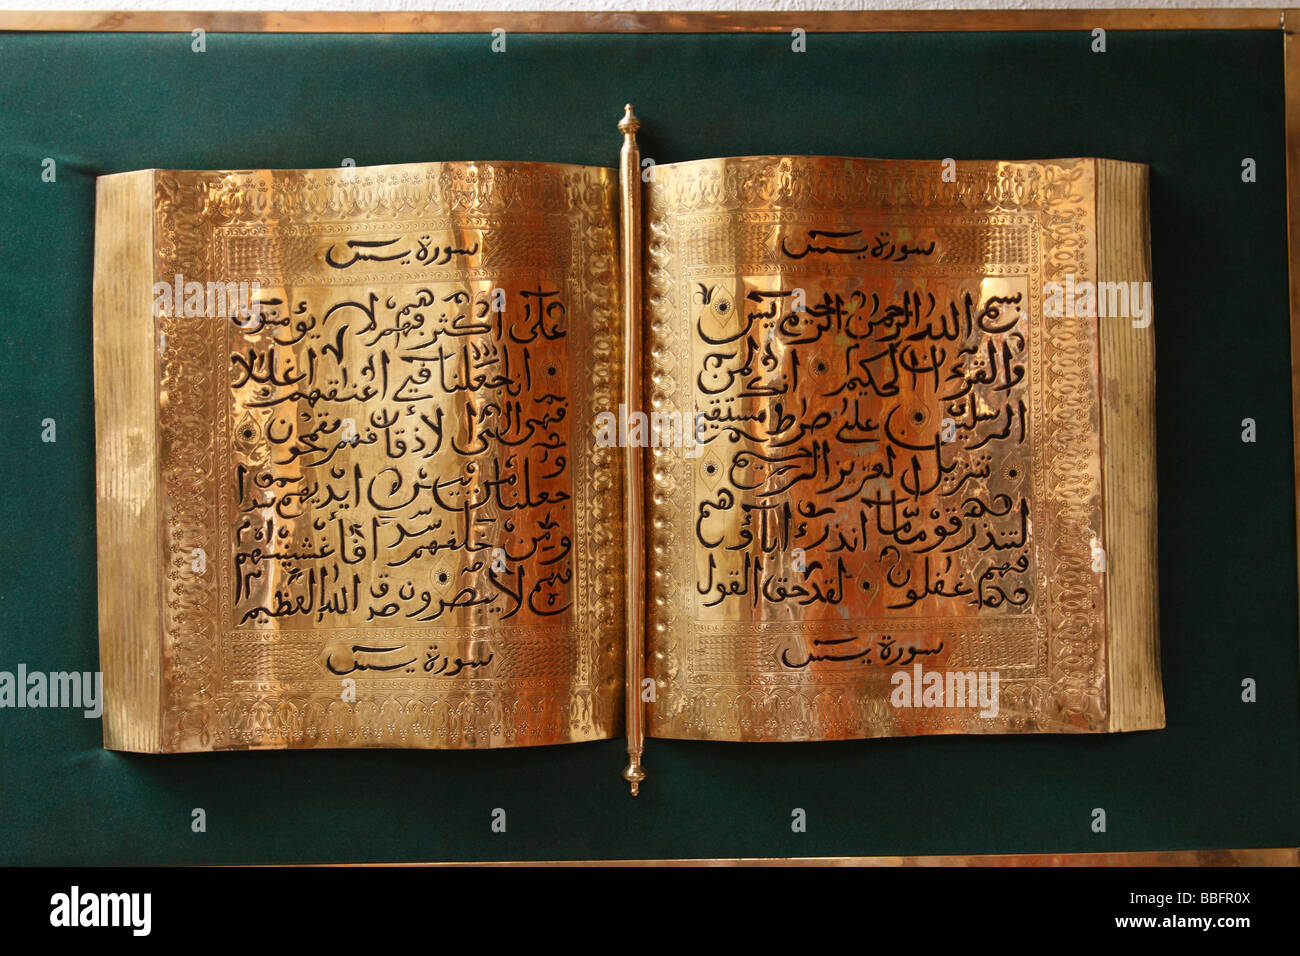 Africa, North Africa, Morocco, Fes, Fès el Bali, Old Fes, Medina, Old Town, Arabic Writing, Gold Book of The - Stock Image